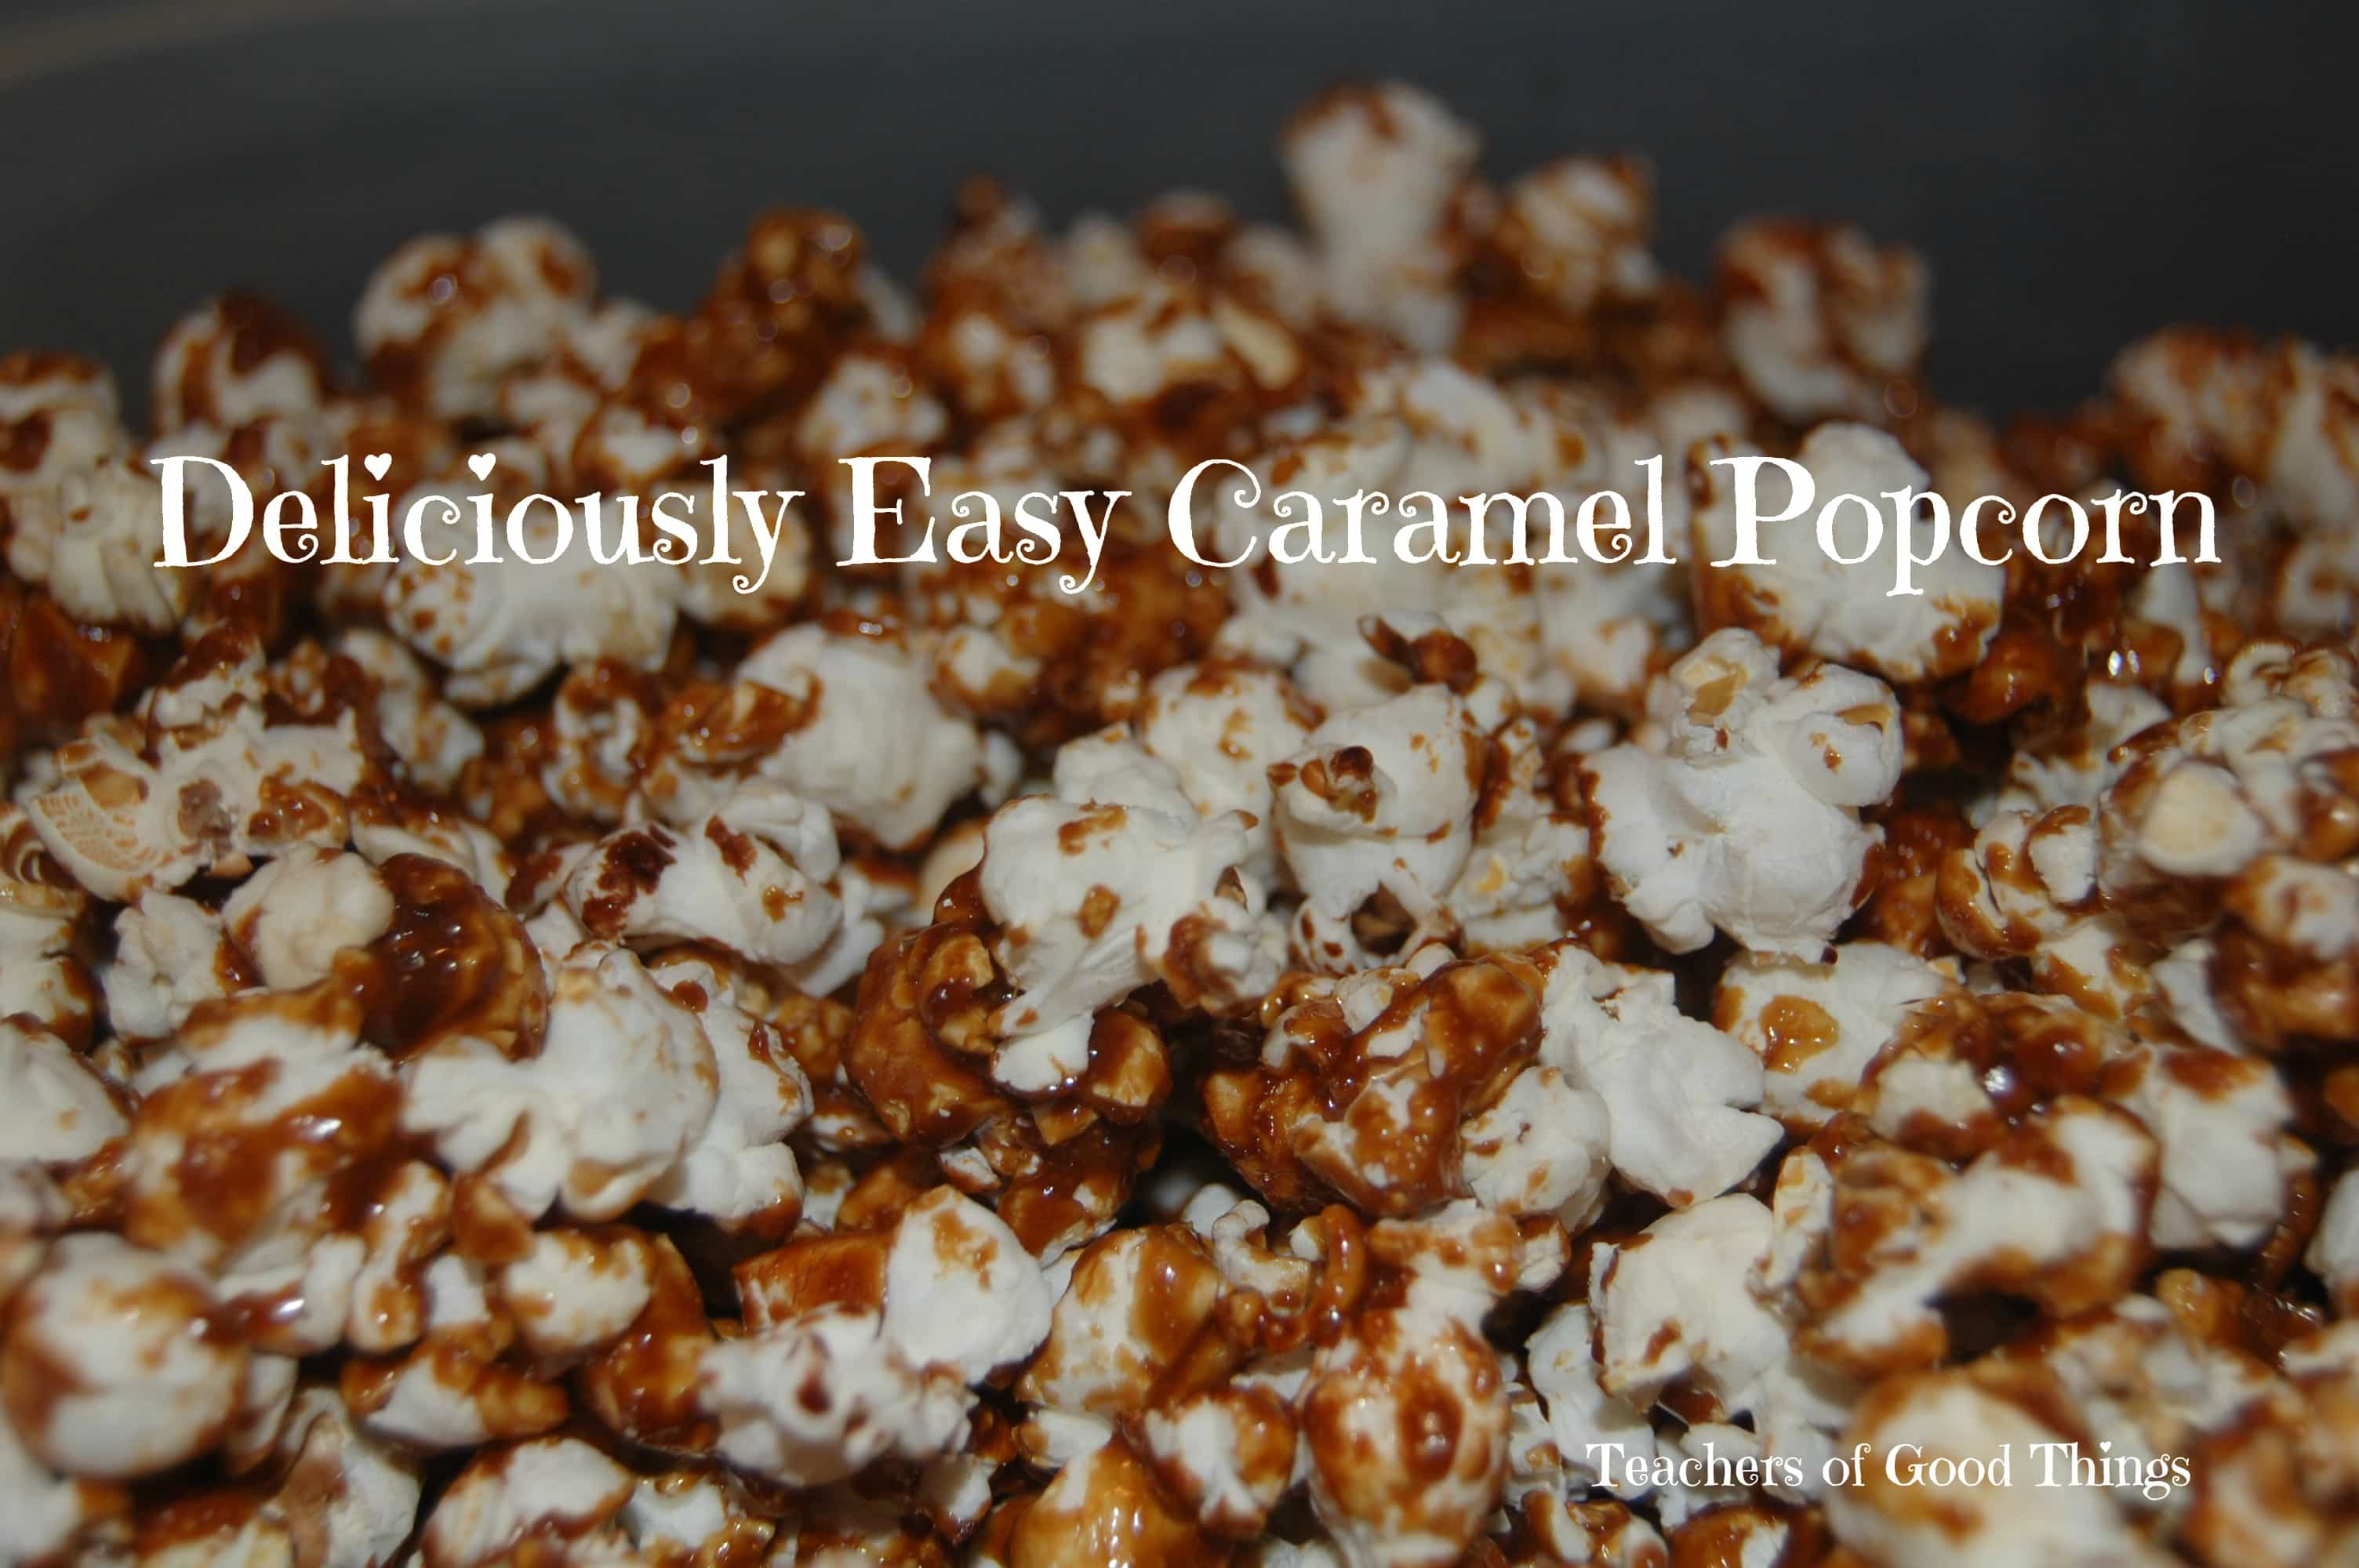 Tuesday's Deliciously Easy Recipe: Caramel Popcorn